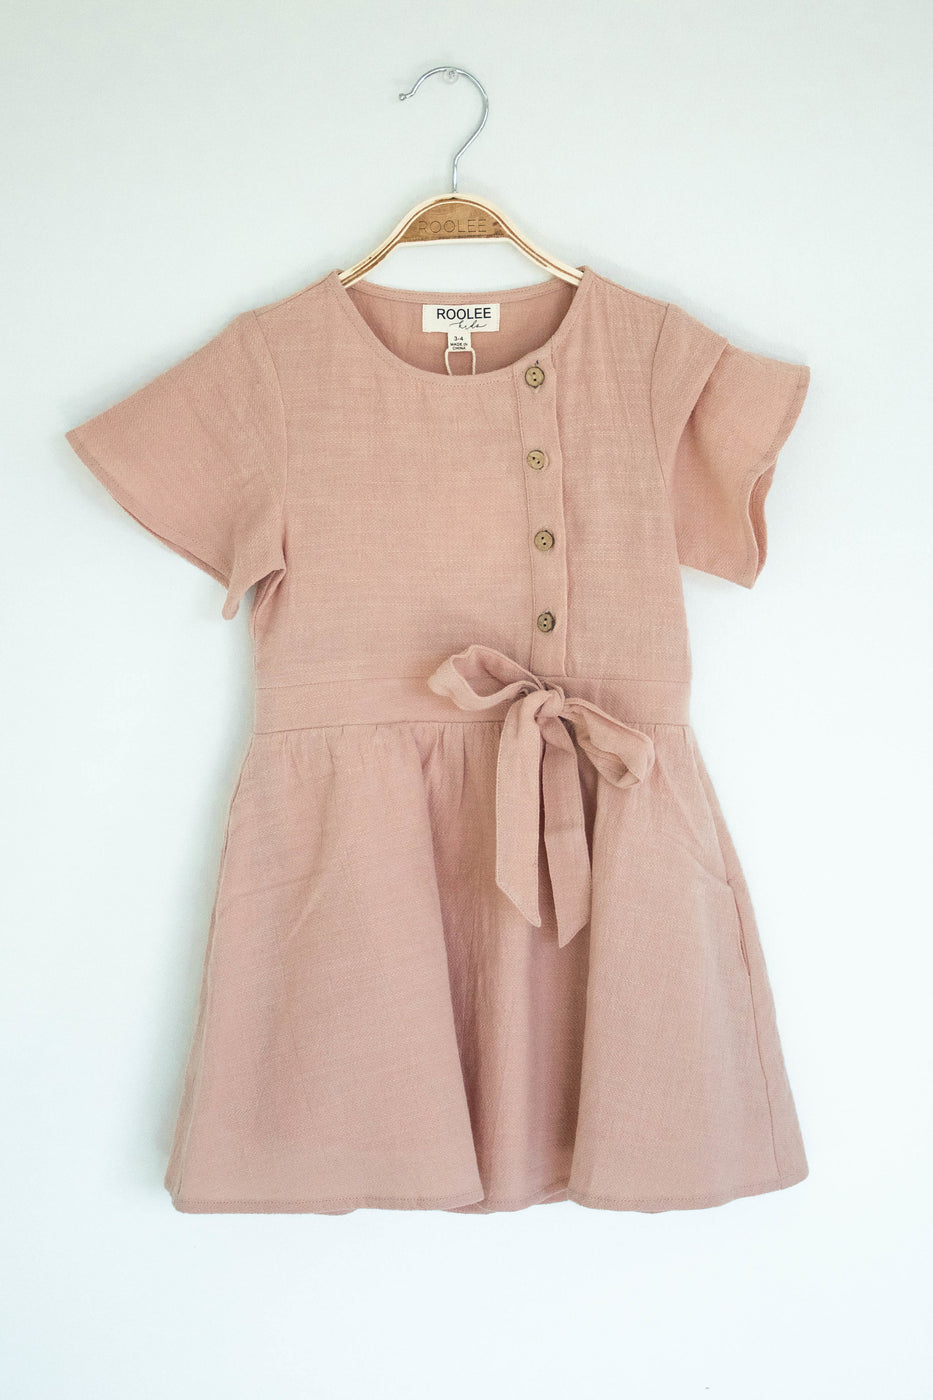 Short Sleeve Button Dress in Mauve | ROOLEE Kids